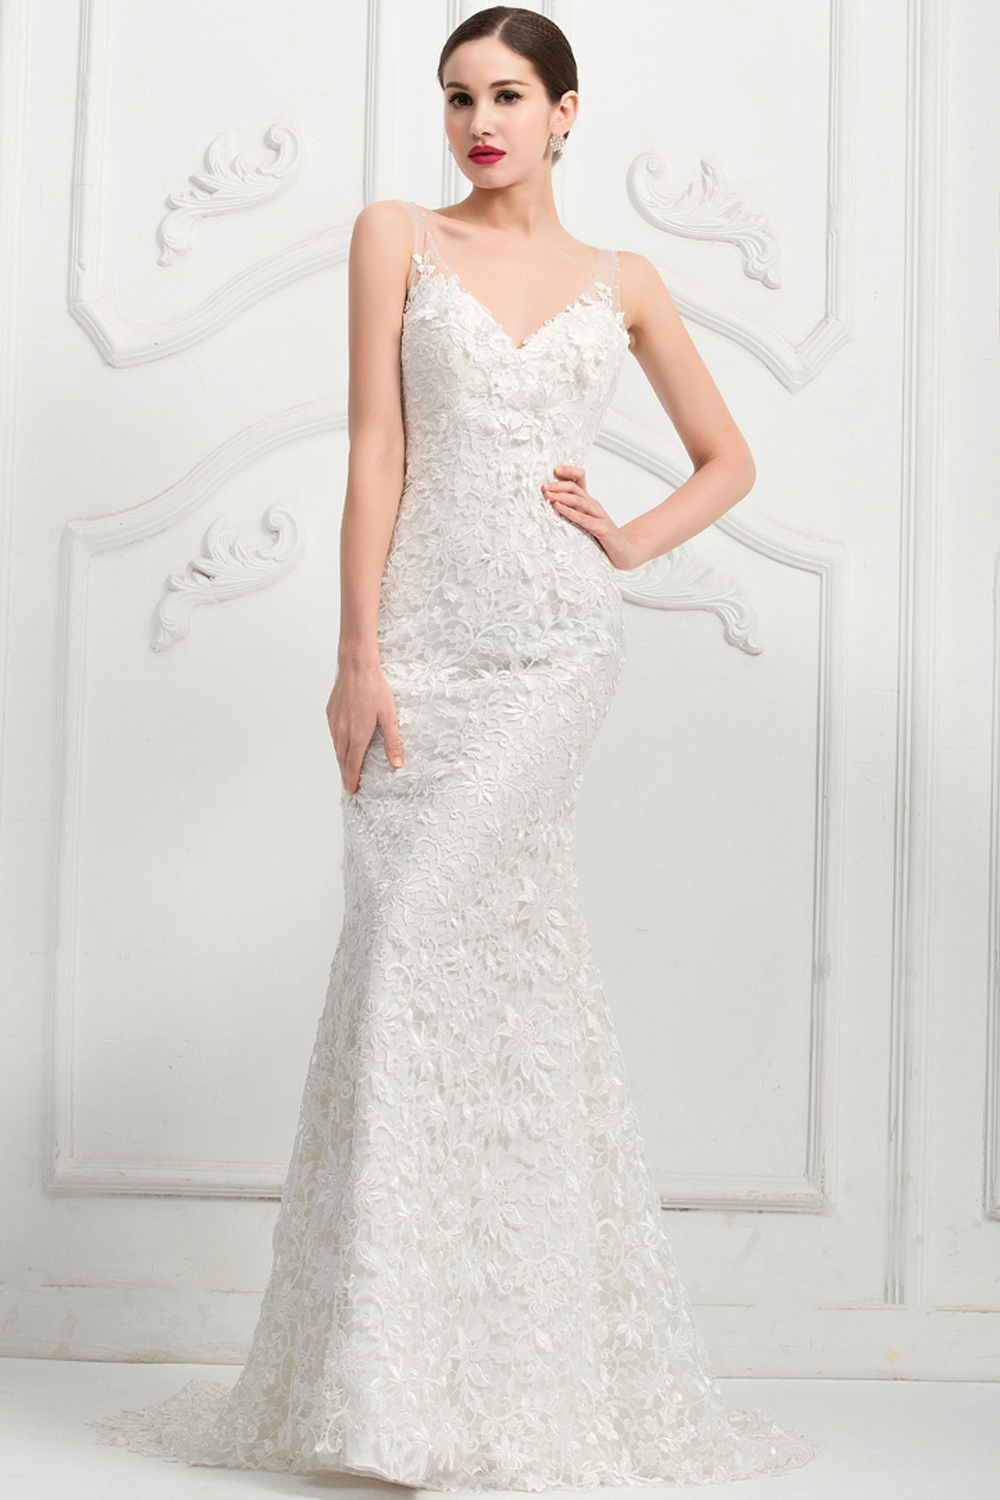 sheath-column-sweep-train-v-neck-tulle-wedding-dress-with-lace